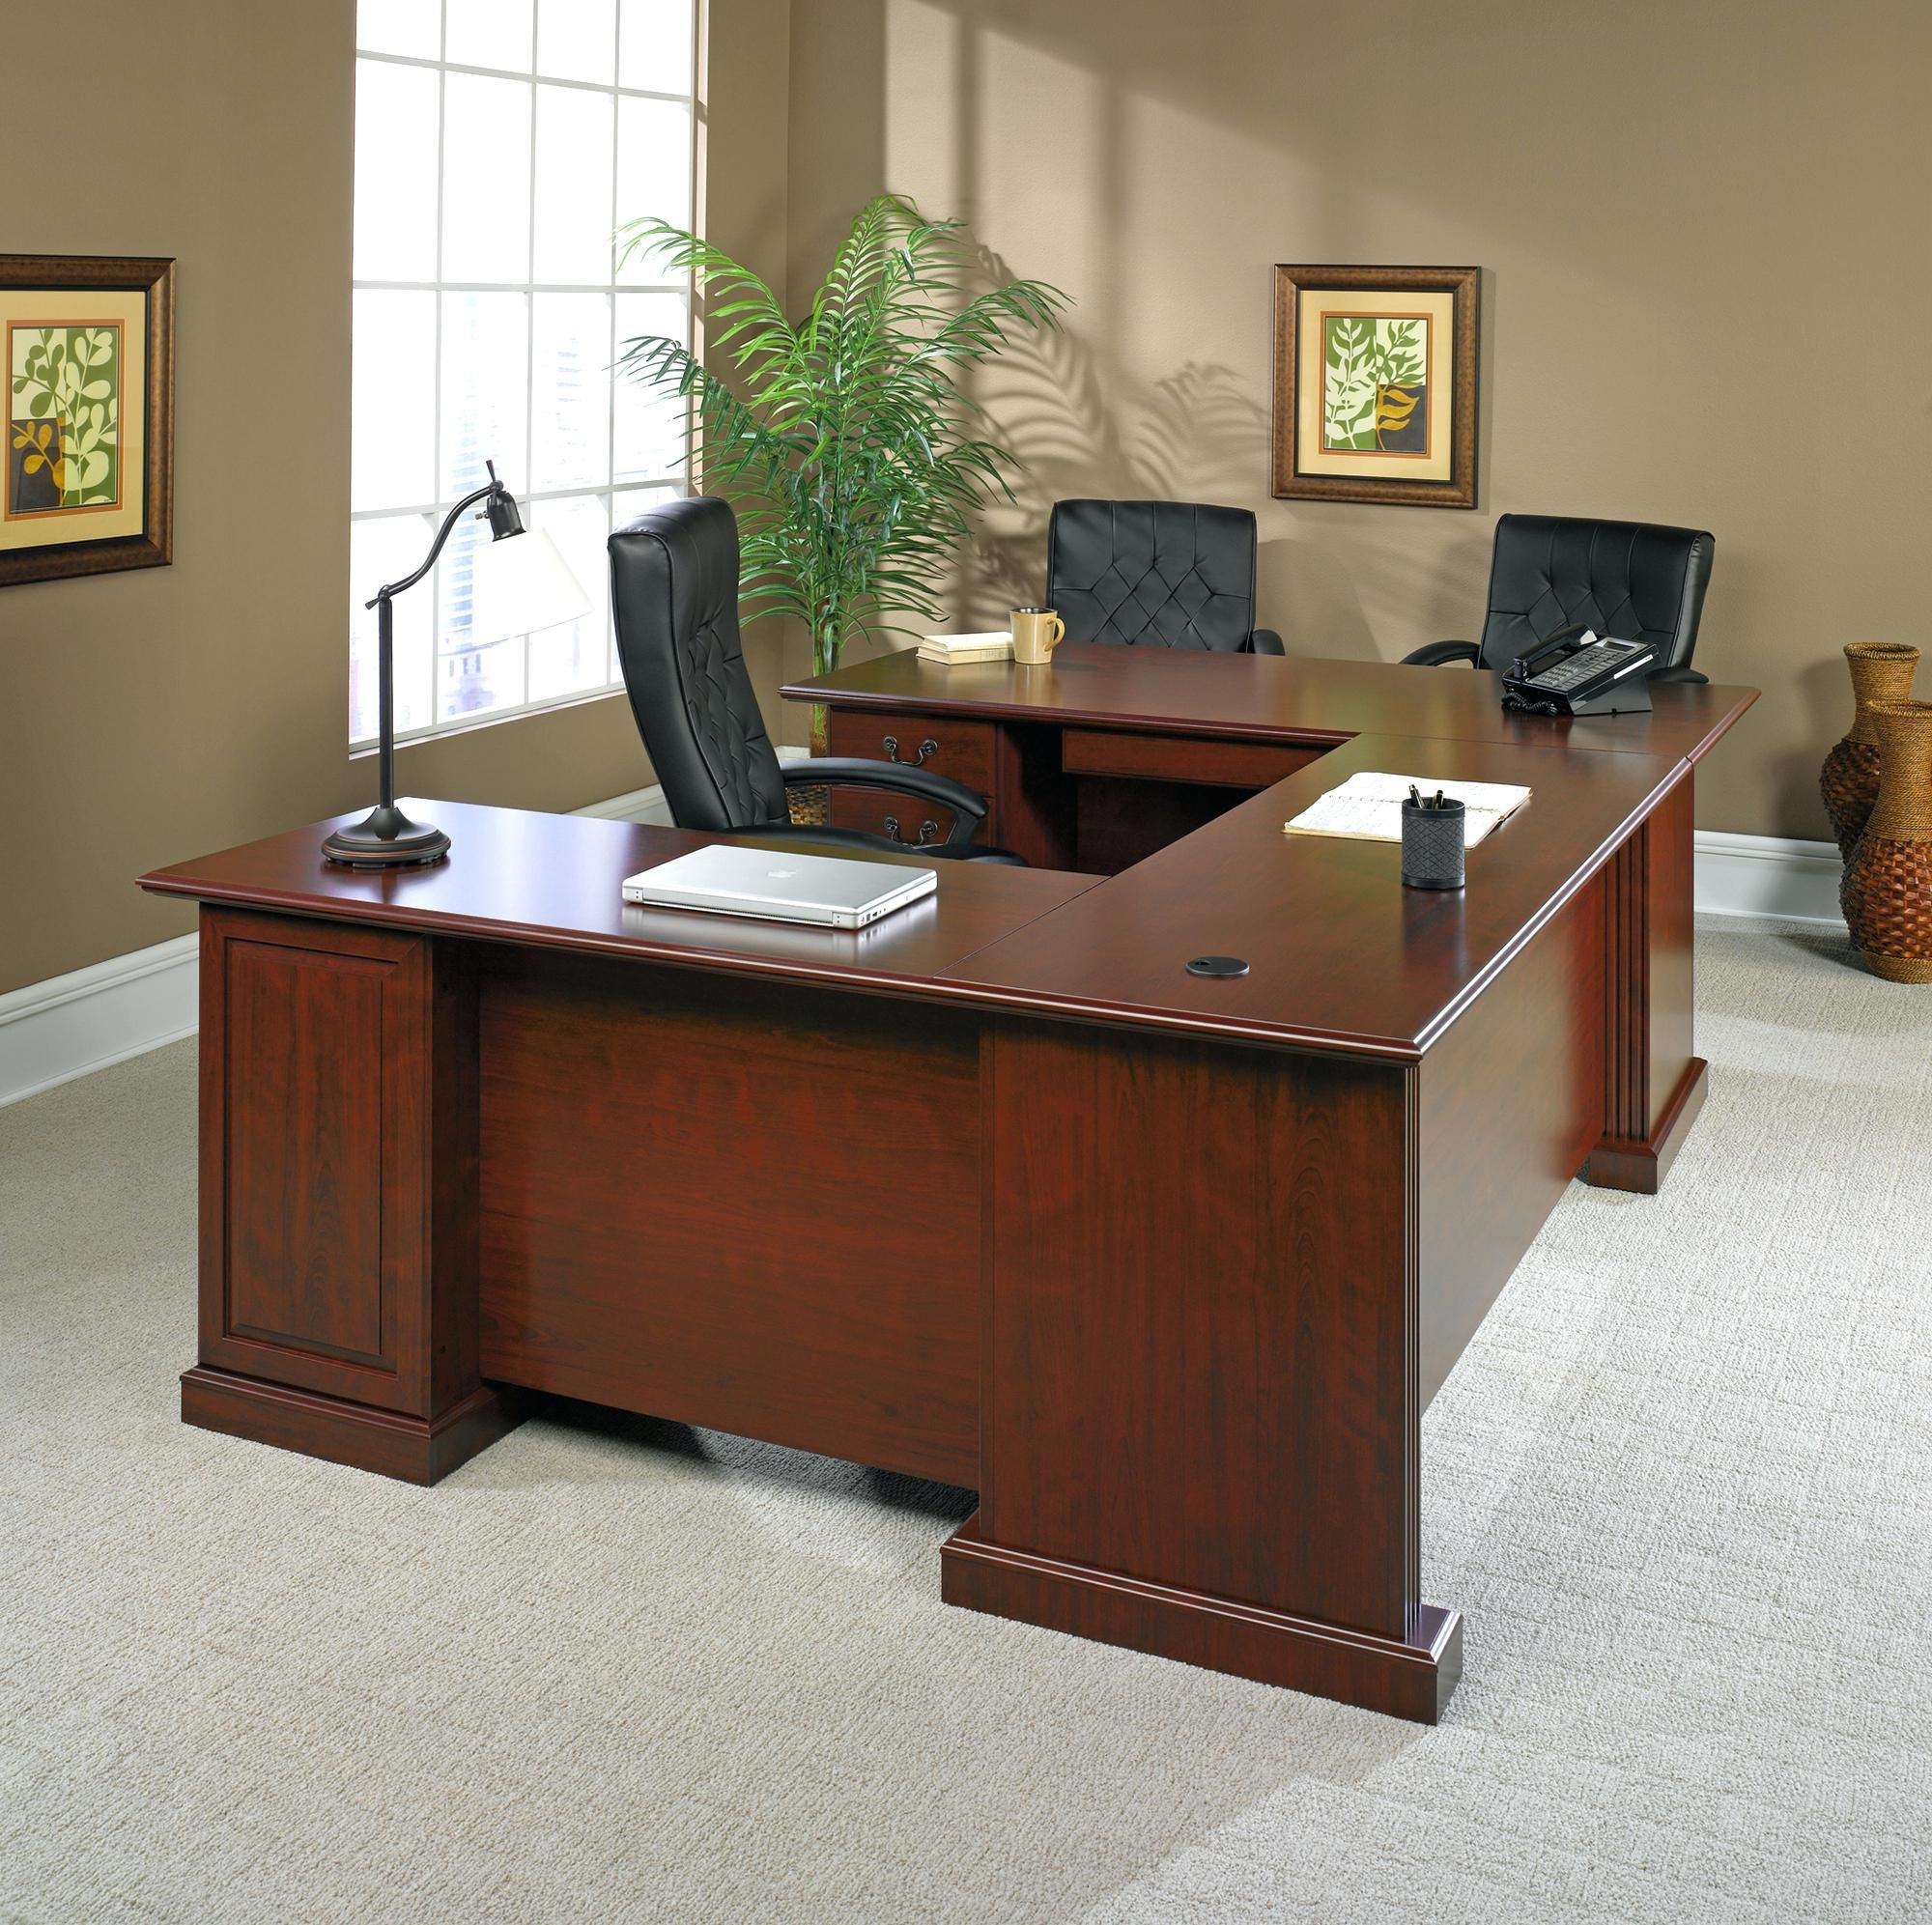 Office Depot Executive Desk Luxury Living Room Furniture Sets Check More At Http